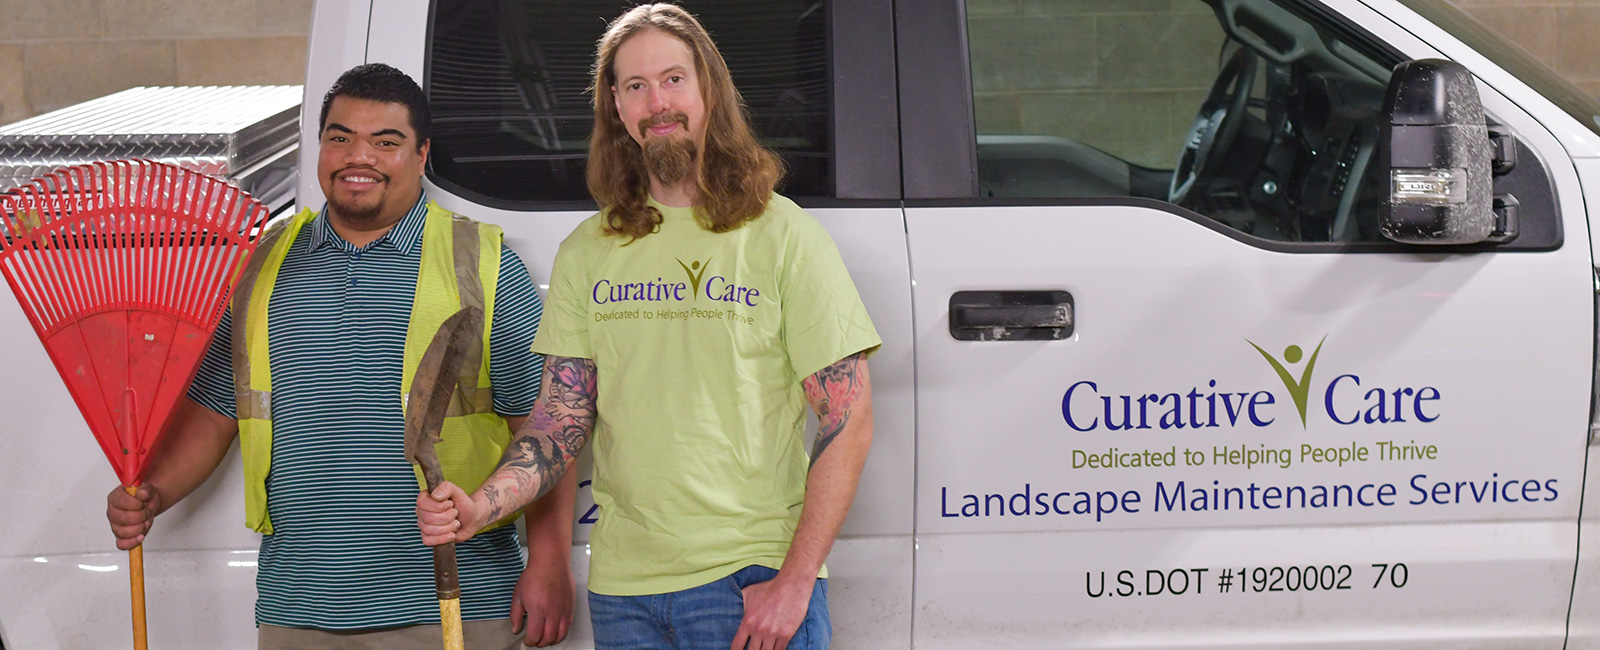 Adult client standing next to landscape supervisor, both holding lawn equipment